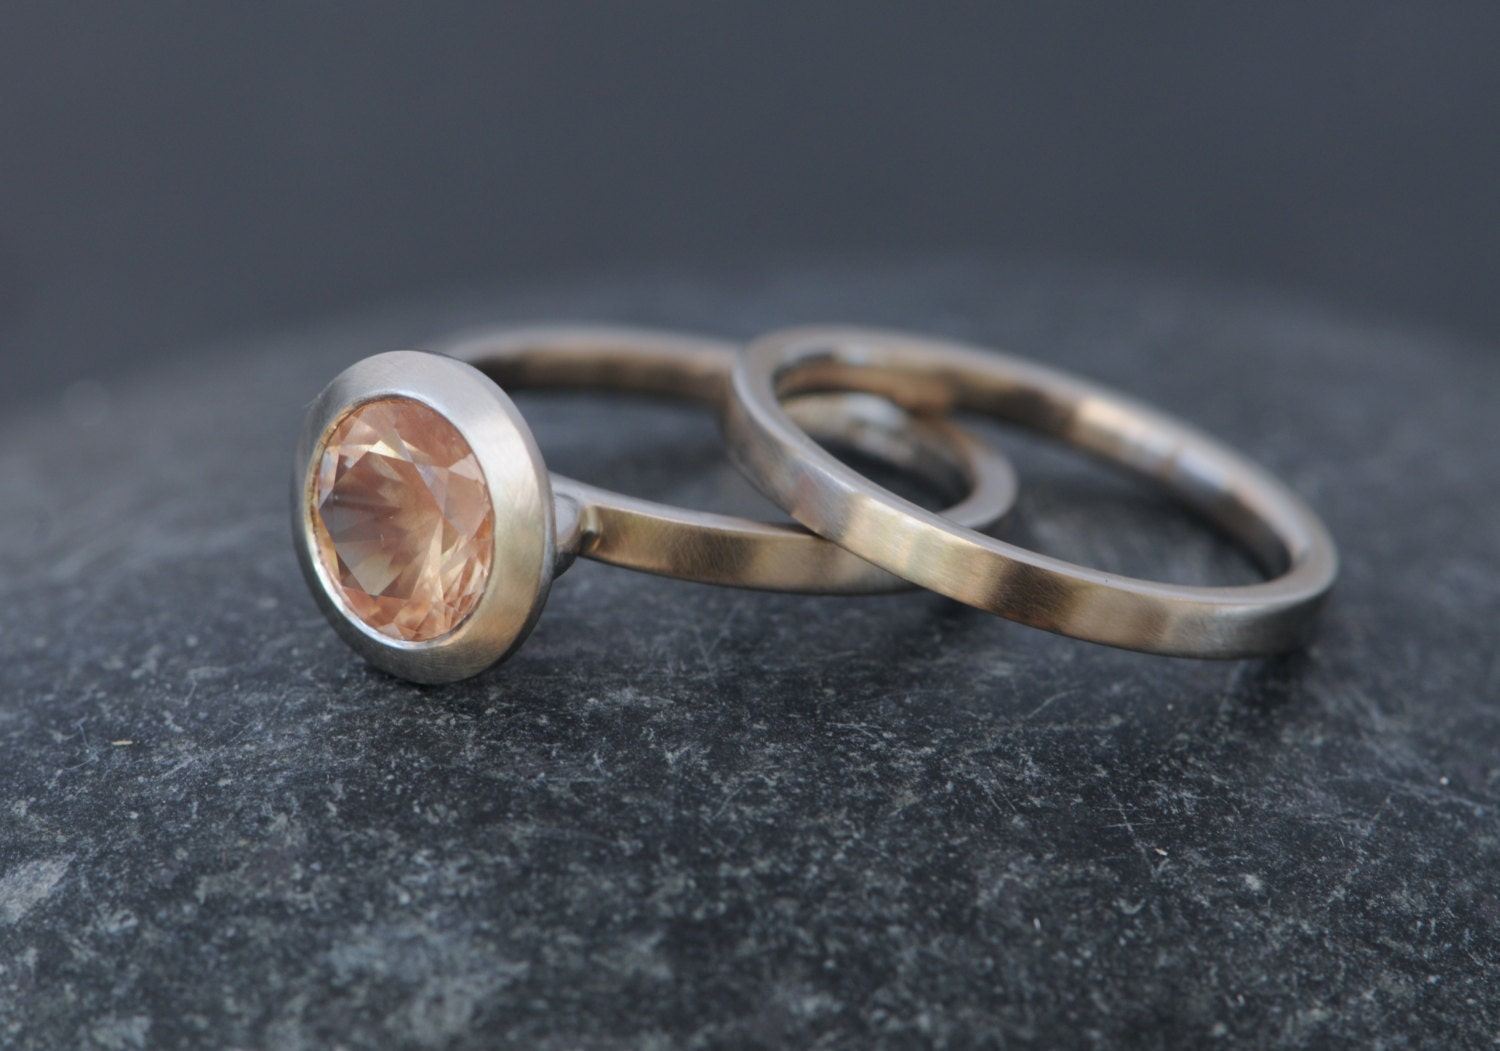 stone ring diamond sun boutique elements sunstone rings product engagement collections image oregon